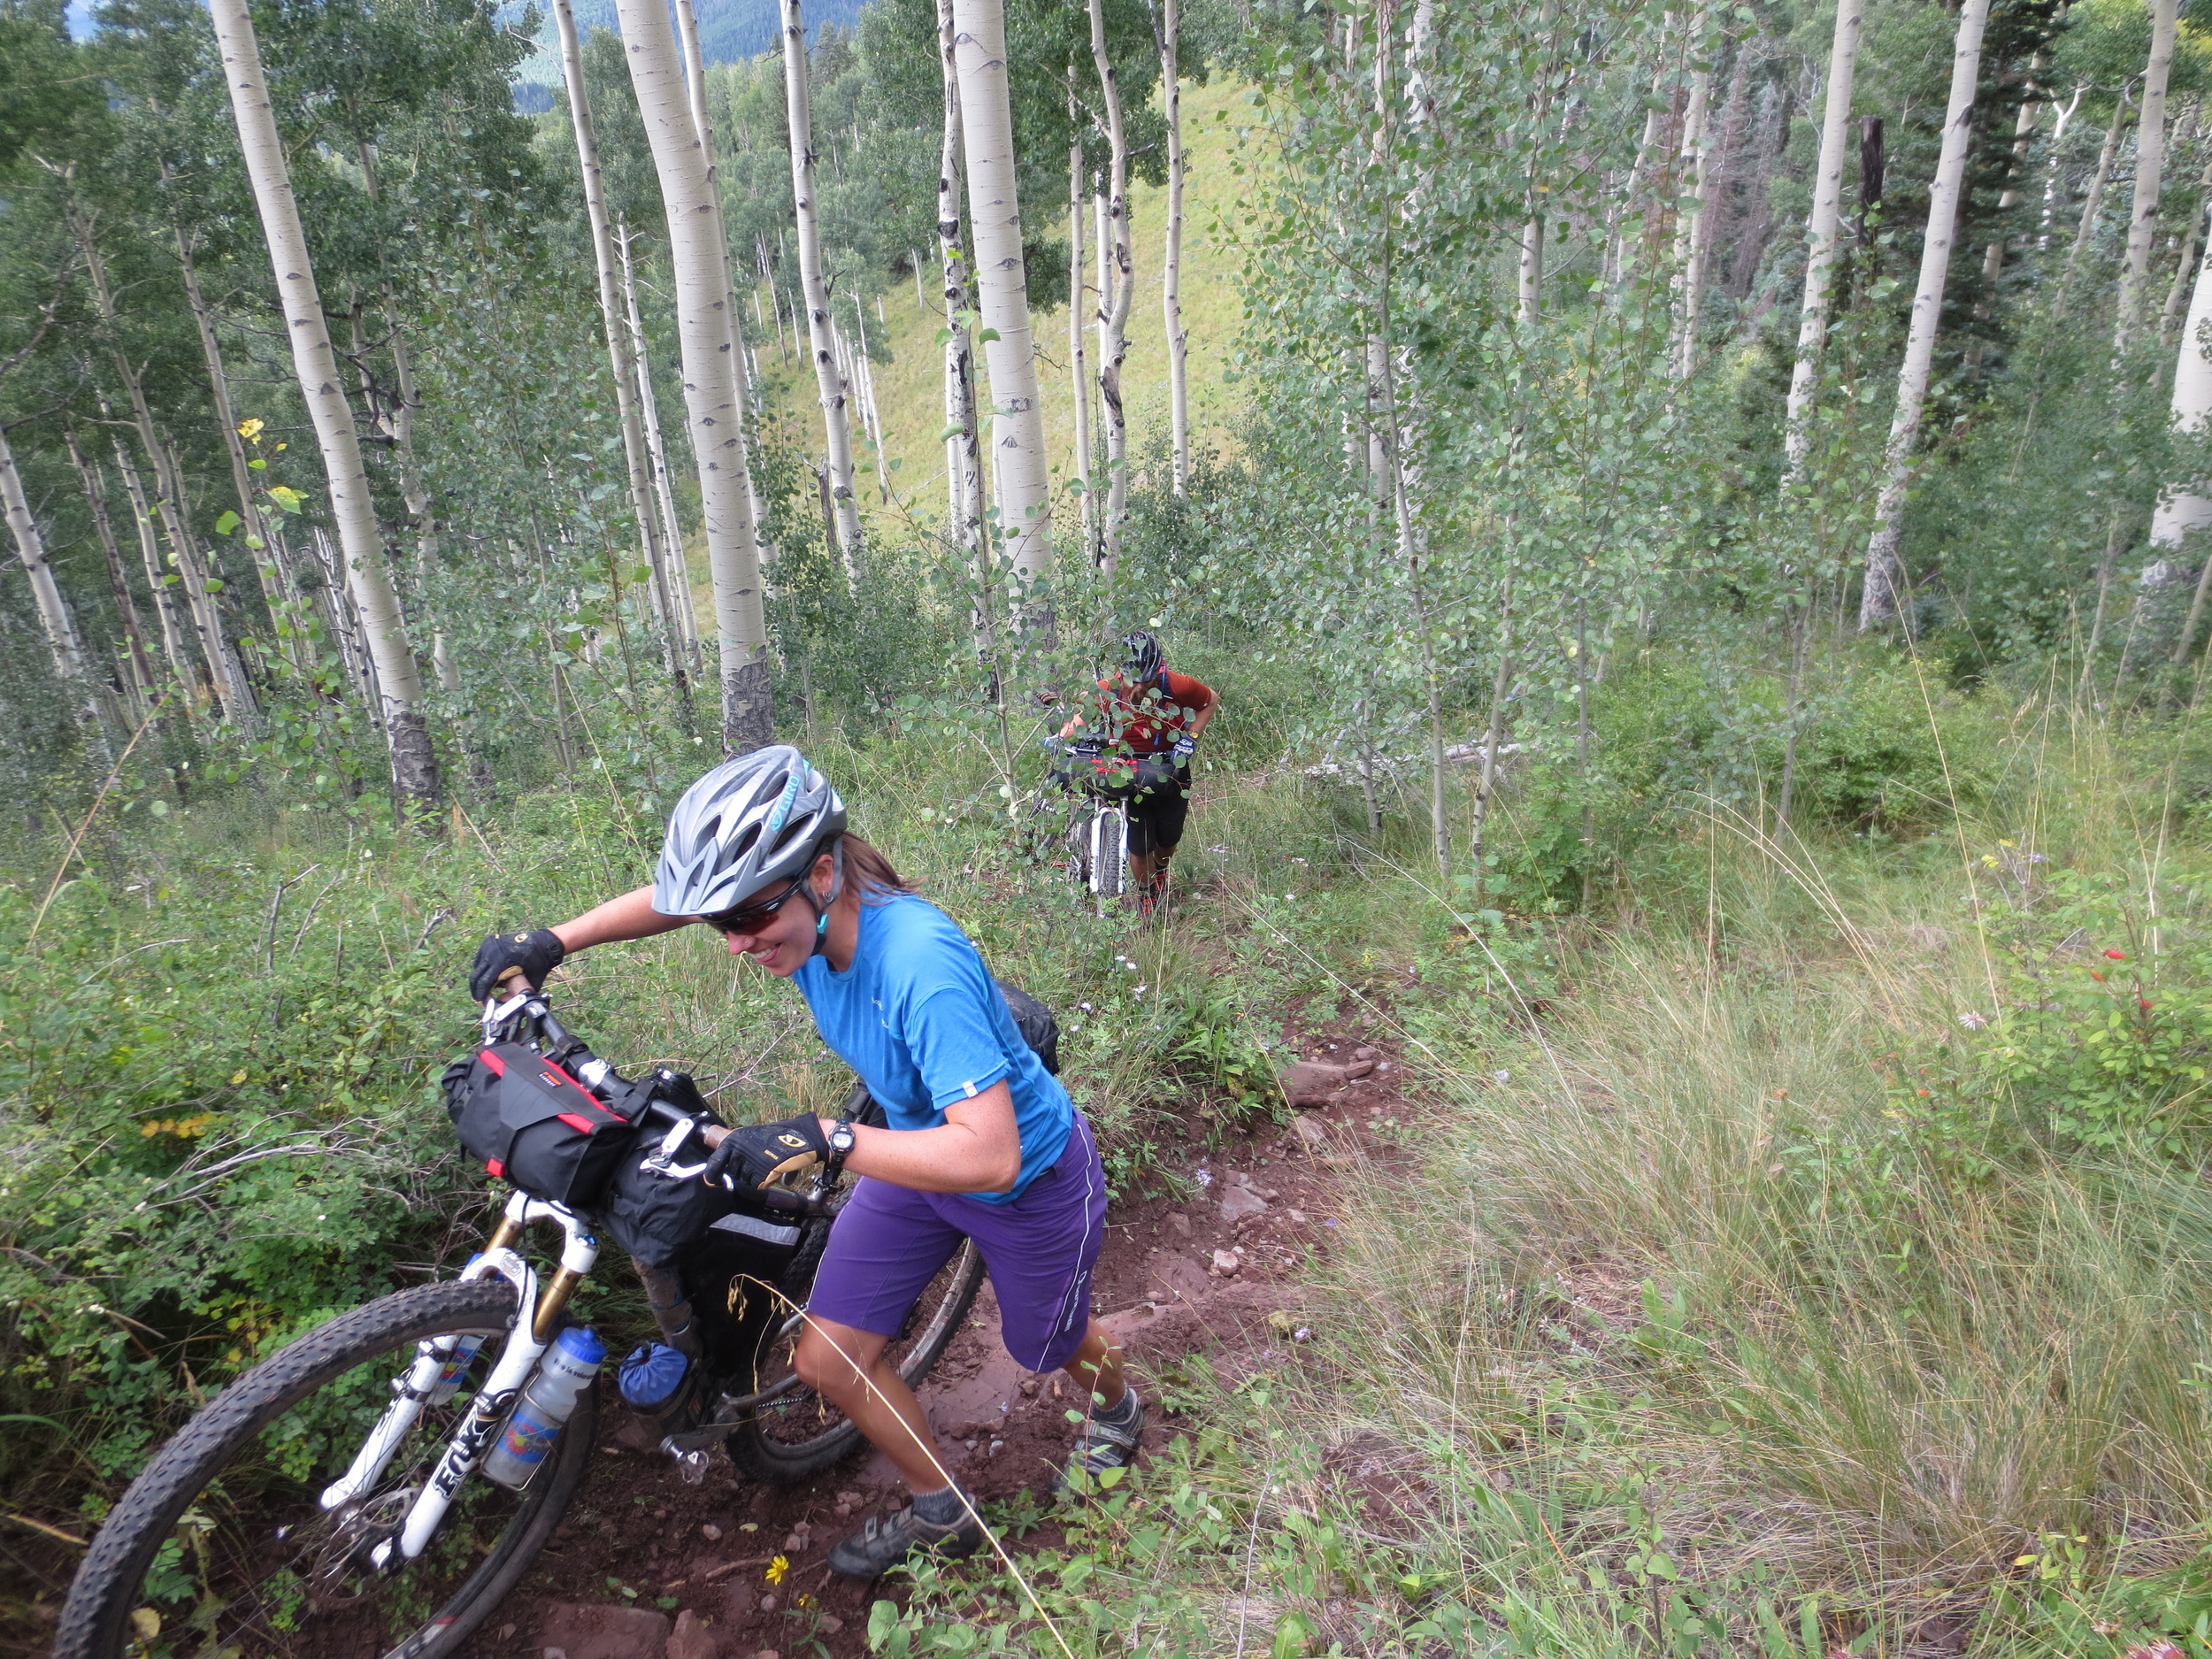 Then we left camp and... you guessed it, hiked our bikes some more!